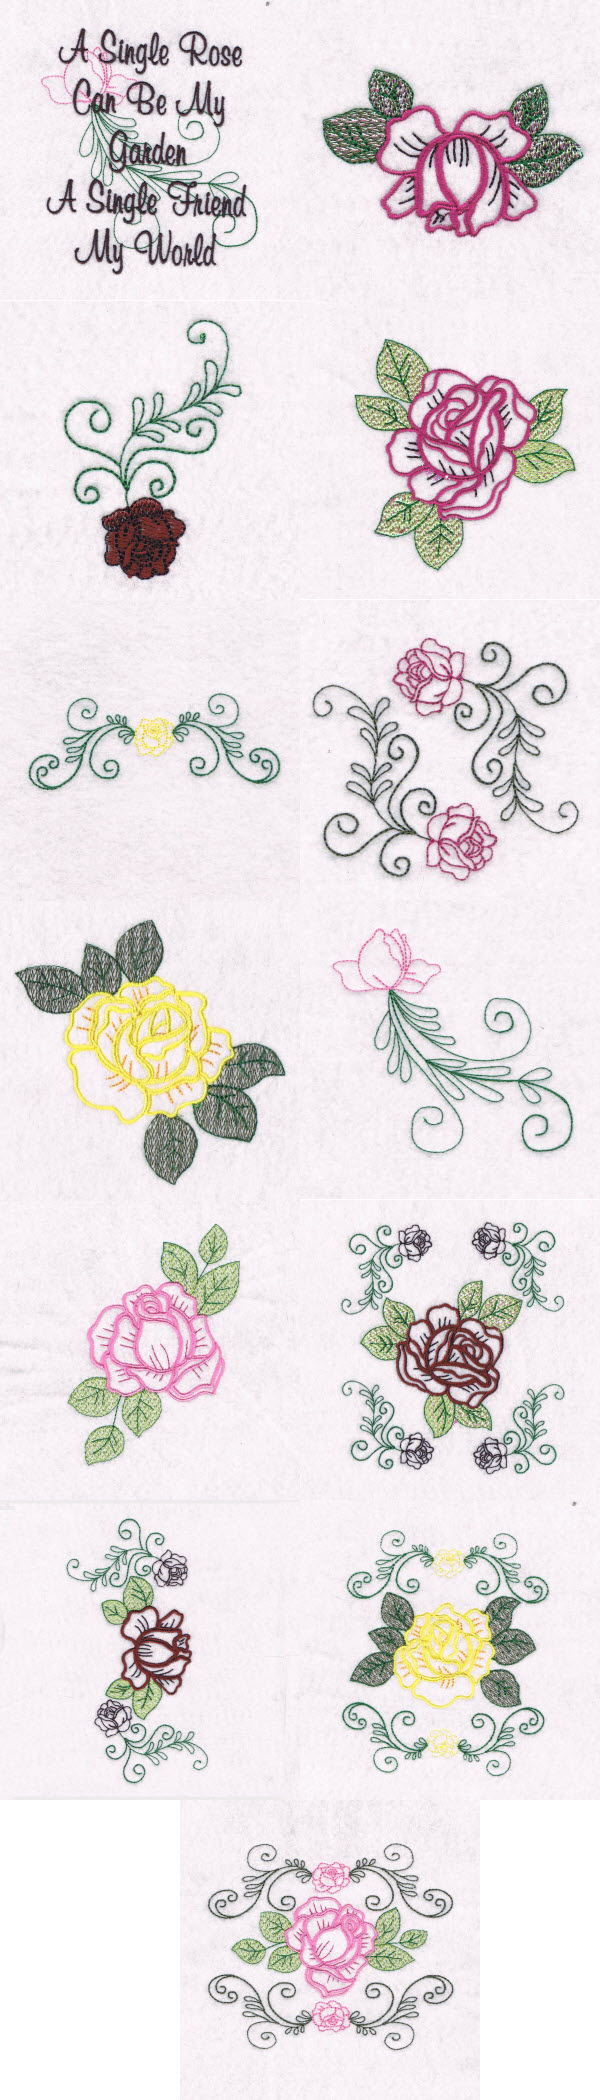 Machine embroidery designs rose garden set for Garden embroidery designs